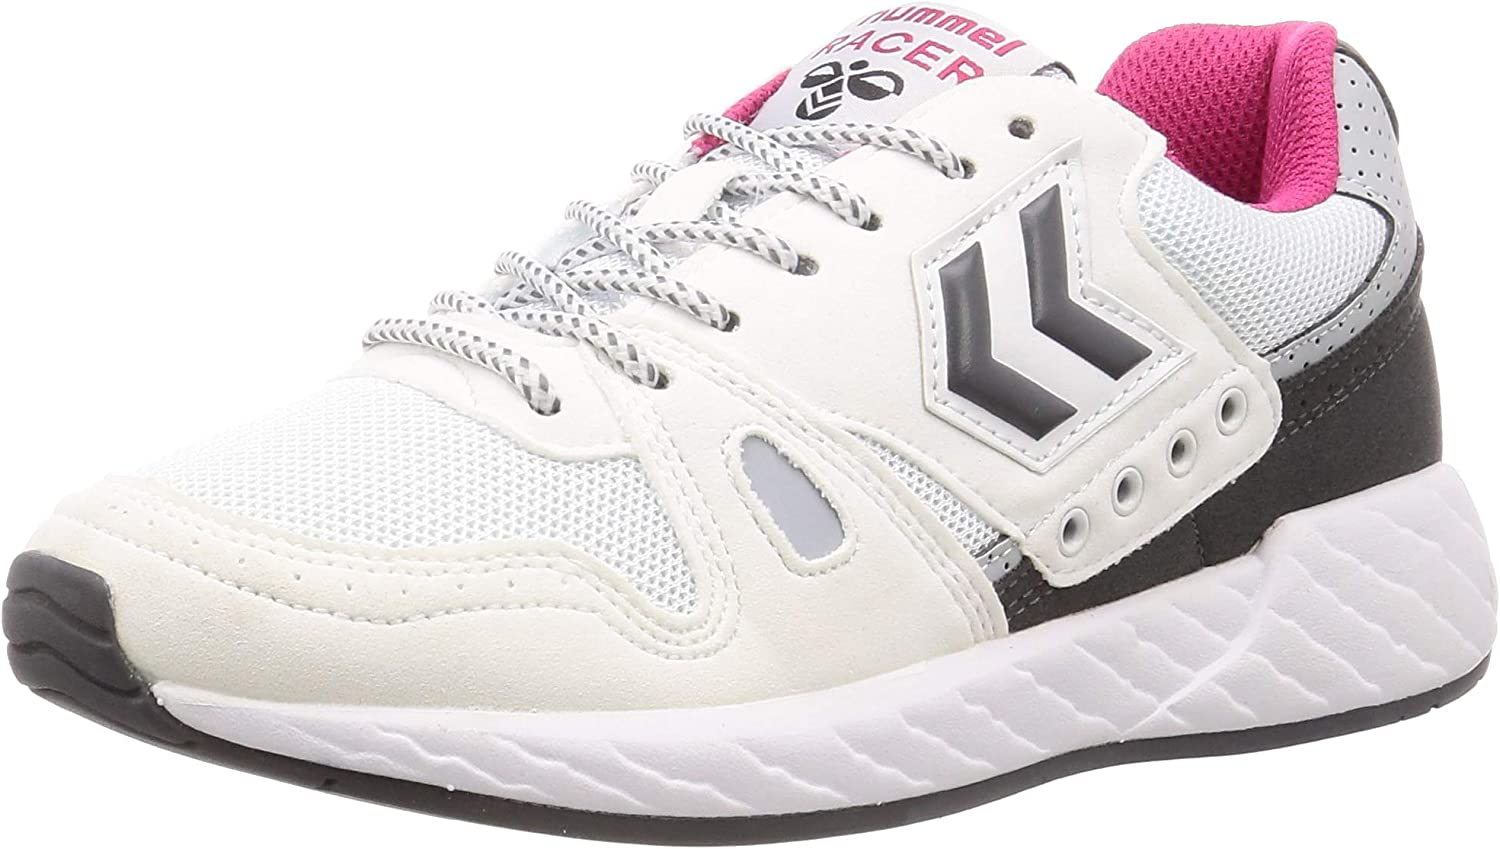 Our shop Recommendation OFFers the best service Hummel Men's Low-Top Sneakers